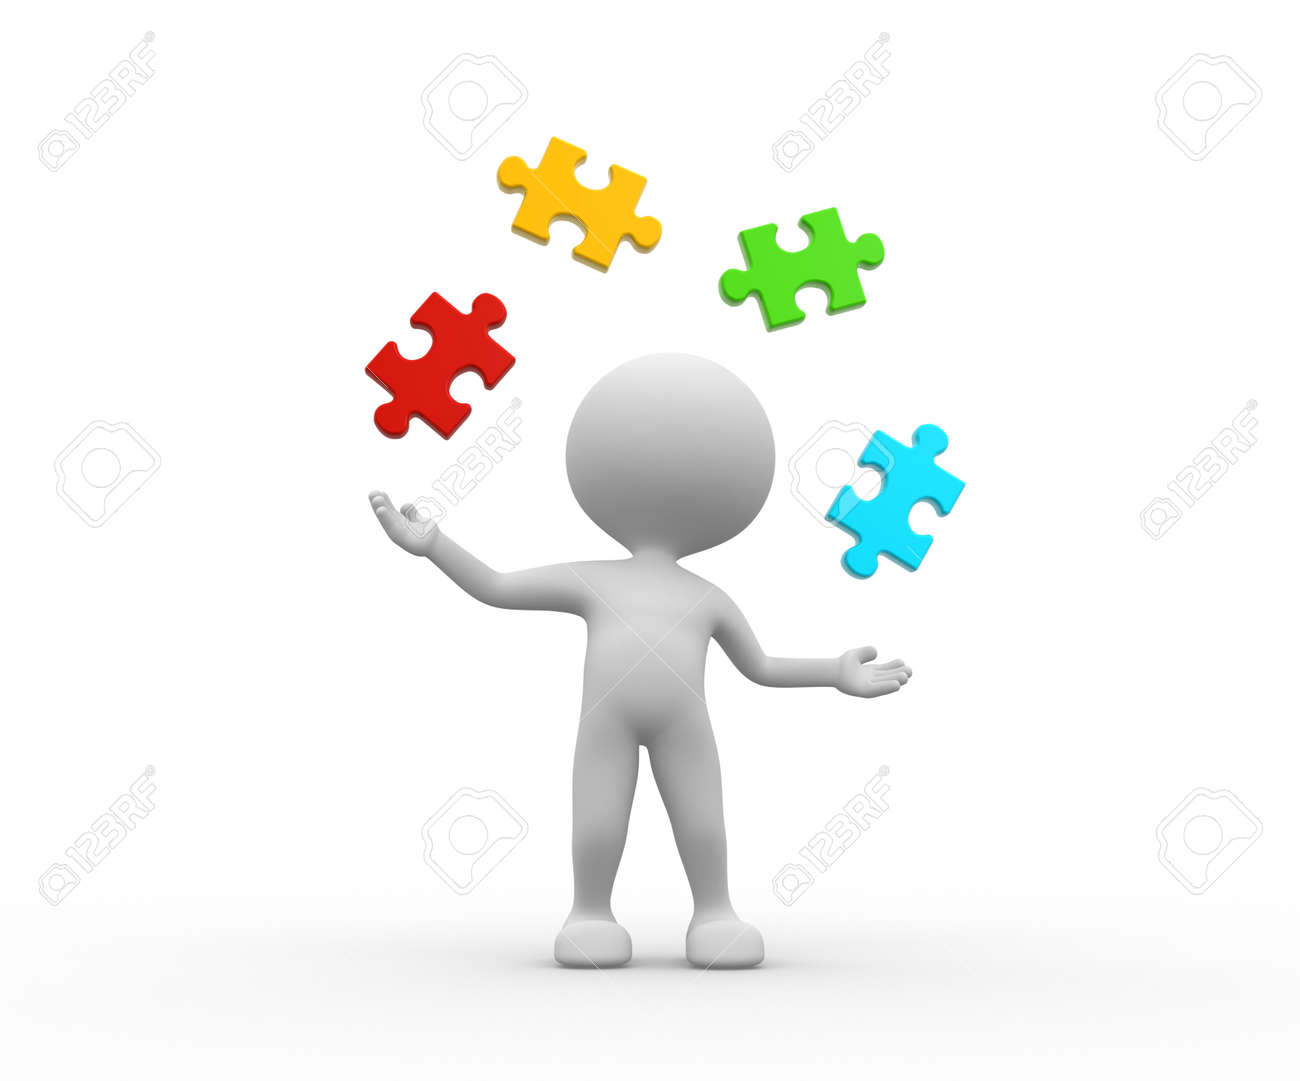 3d people - man, person juggle with pieces of puzzle Stock Photo - 25849965